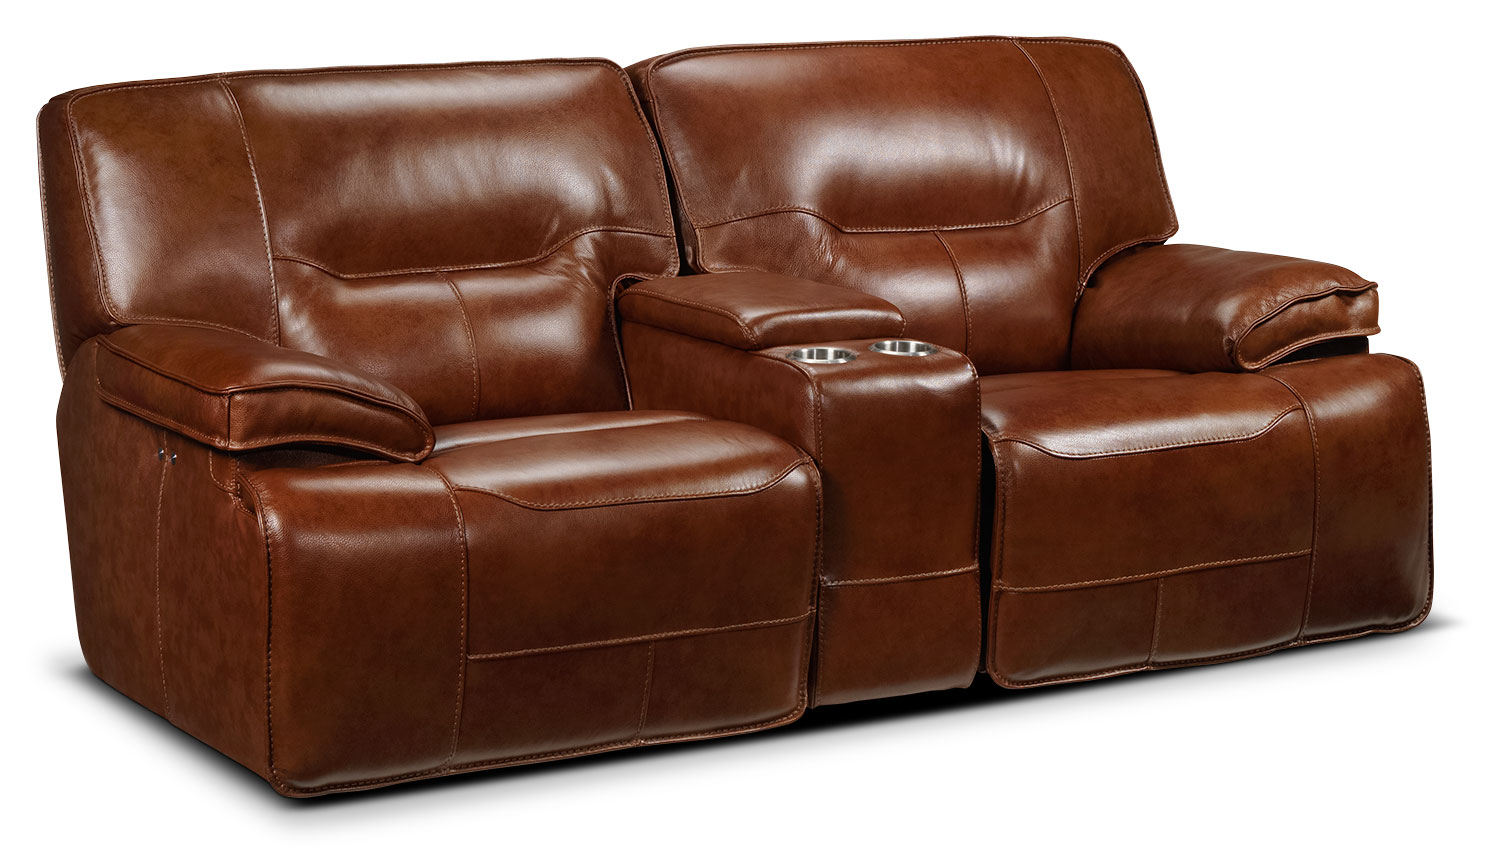 Living Room Furniture - Baxter Power Glider Reclining Loveseat - Chestnut